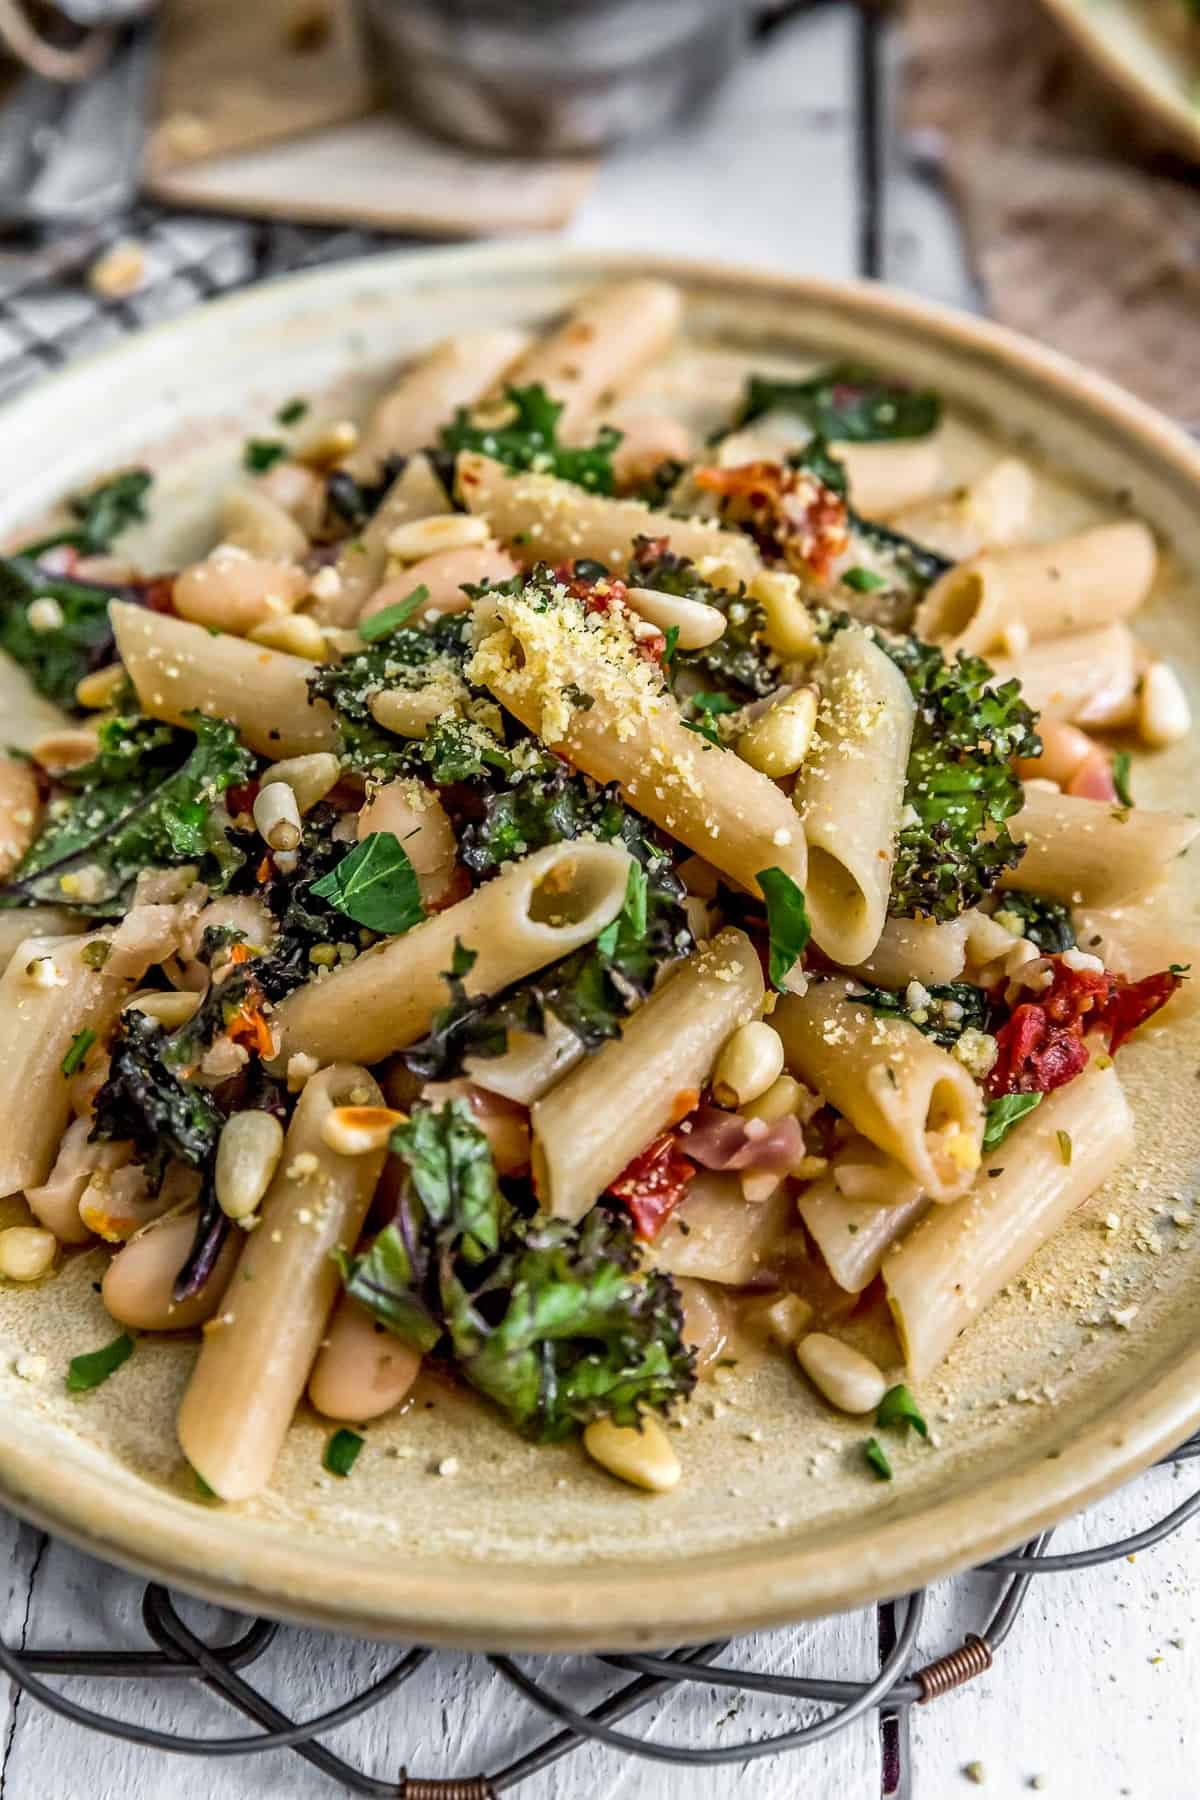 Plate of Italian Pasta and Kale